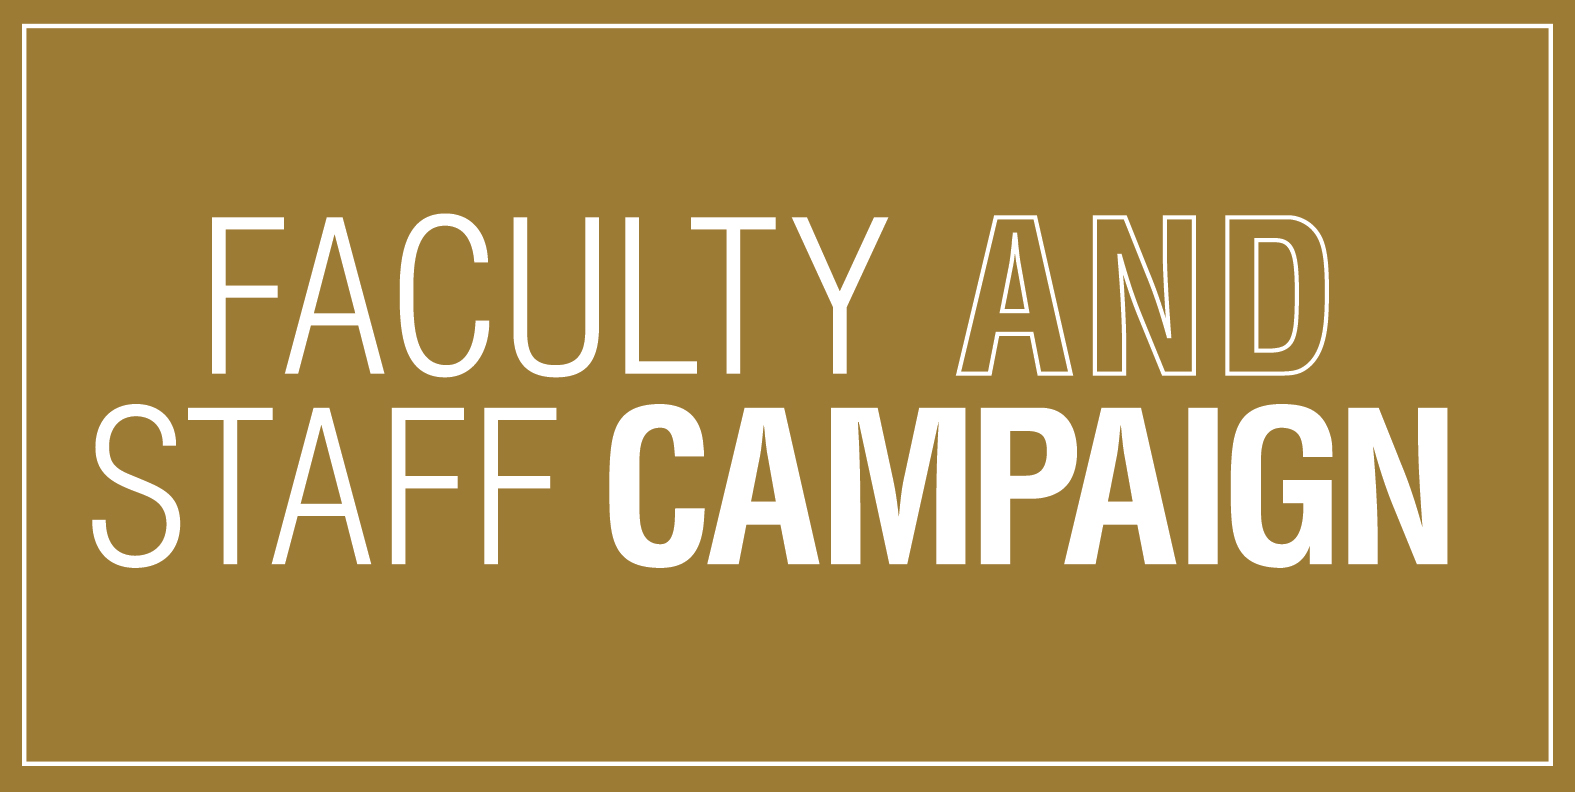 Faculty and Staff Campaign Identity Graphic